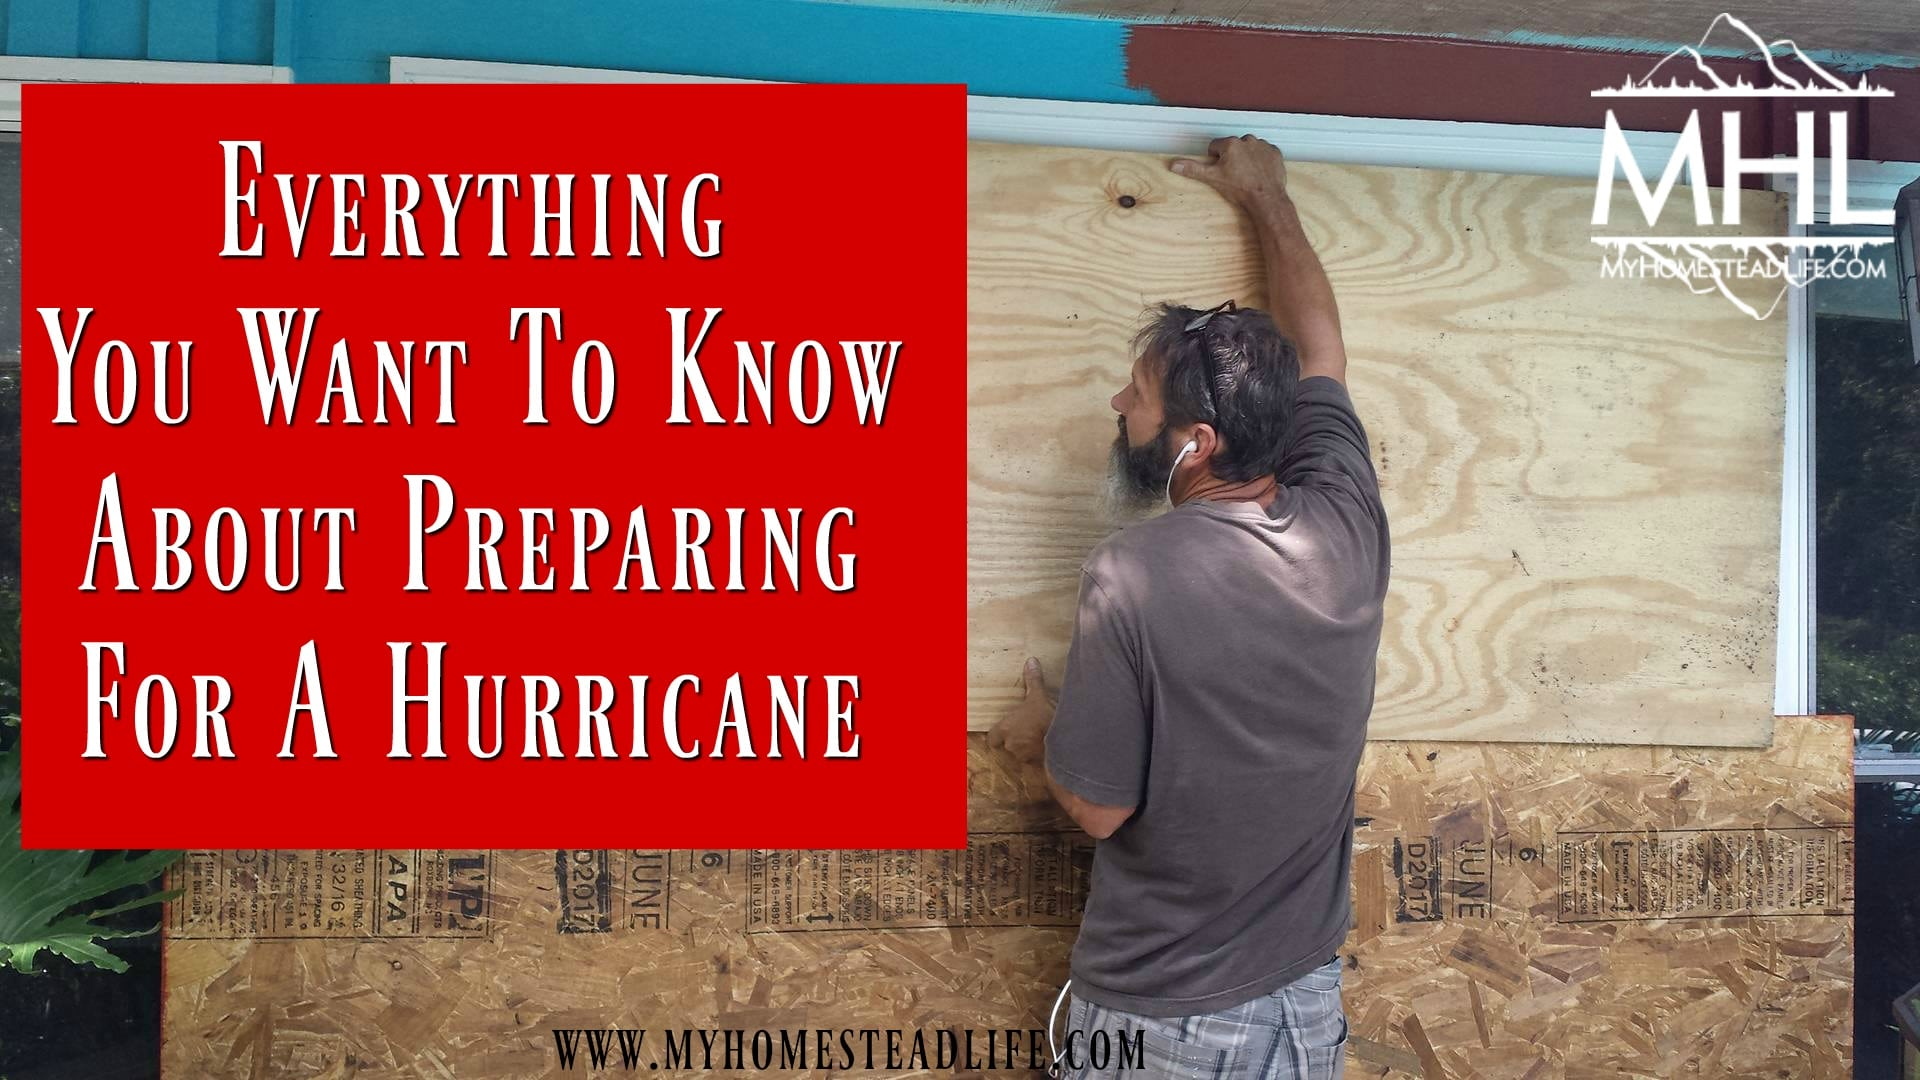 Everything You Want To Know About Preparing For A Hurricane